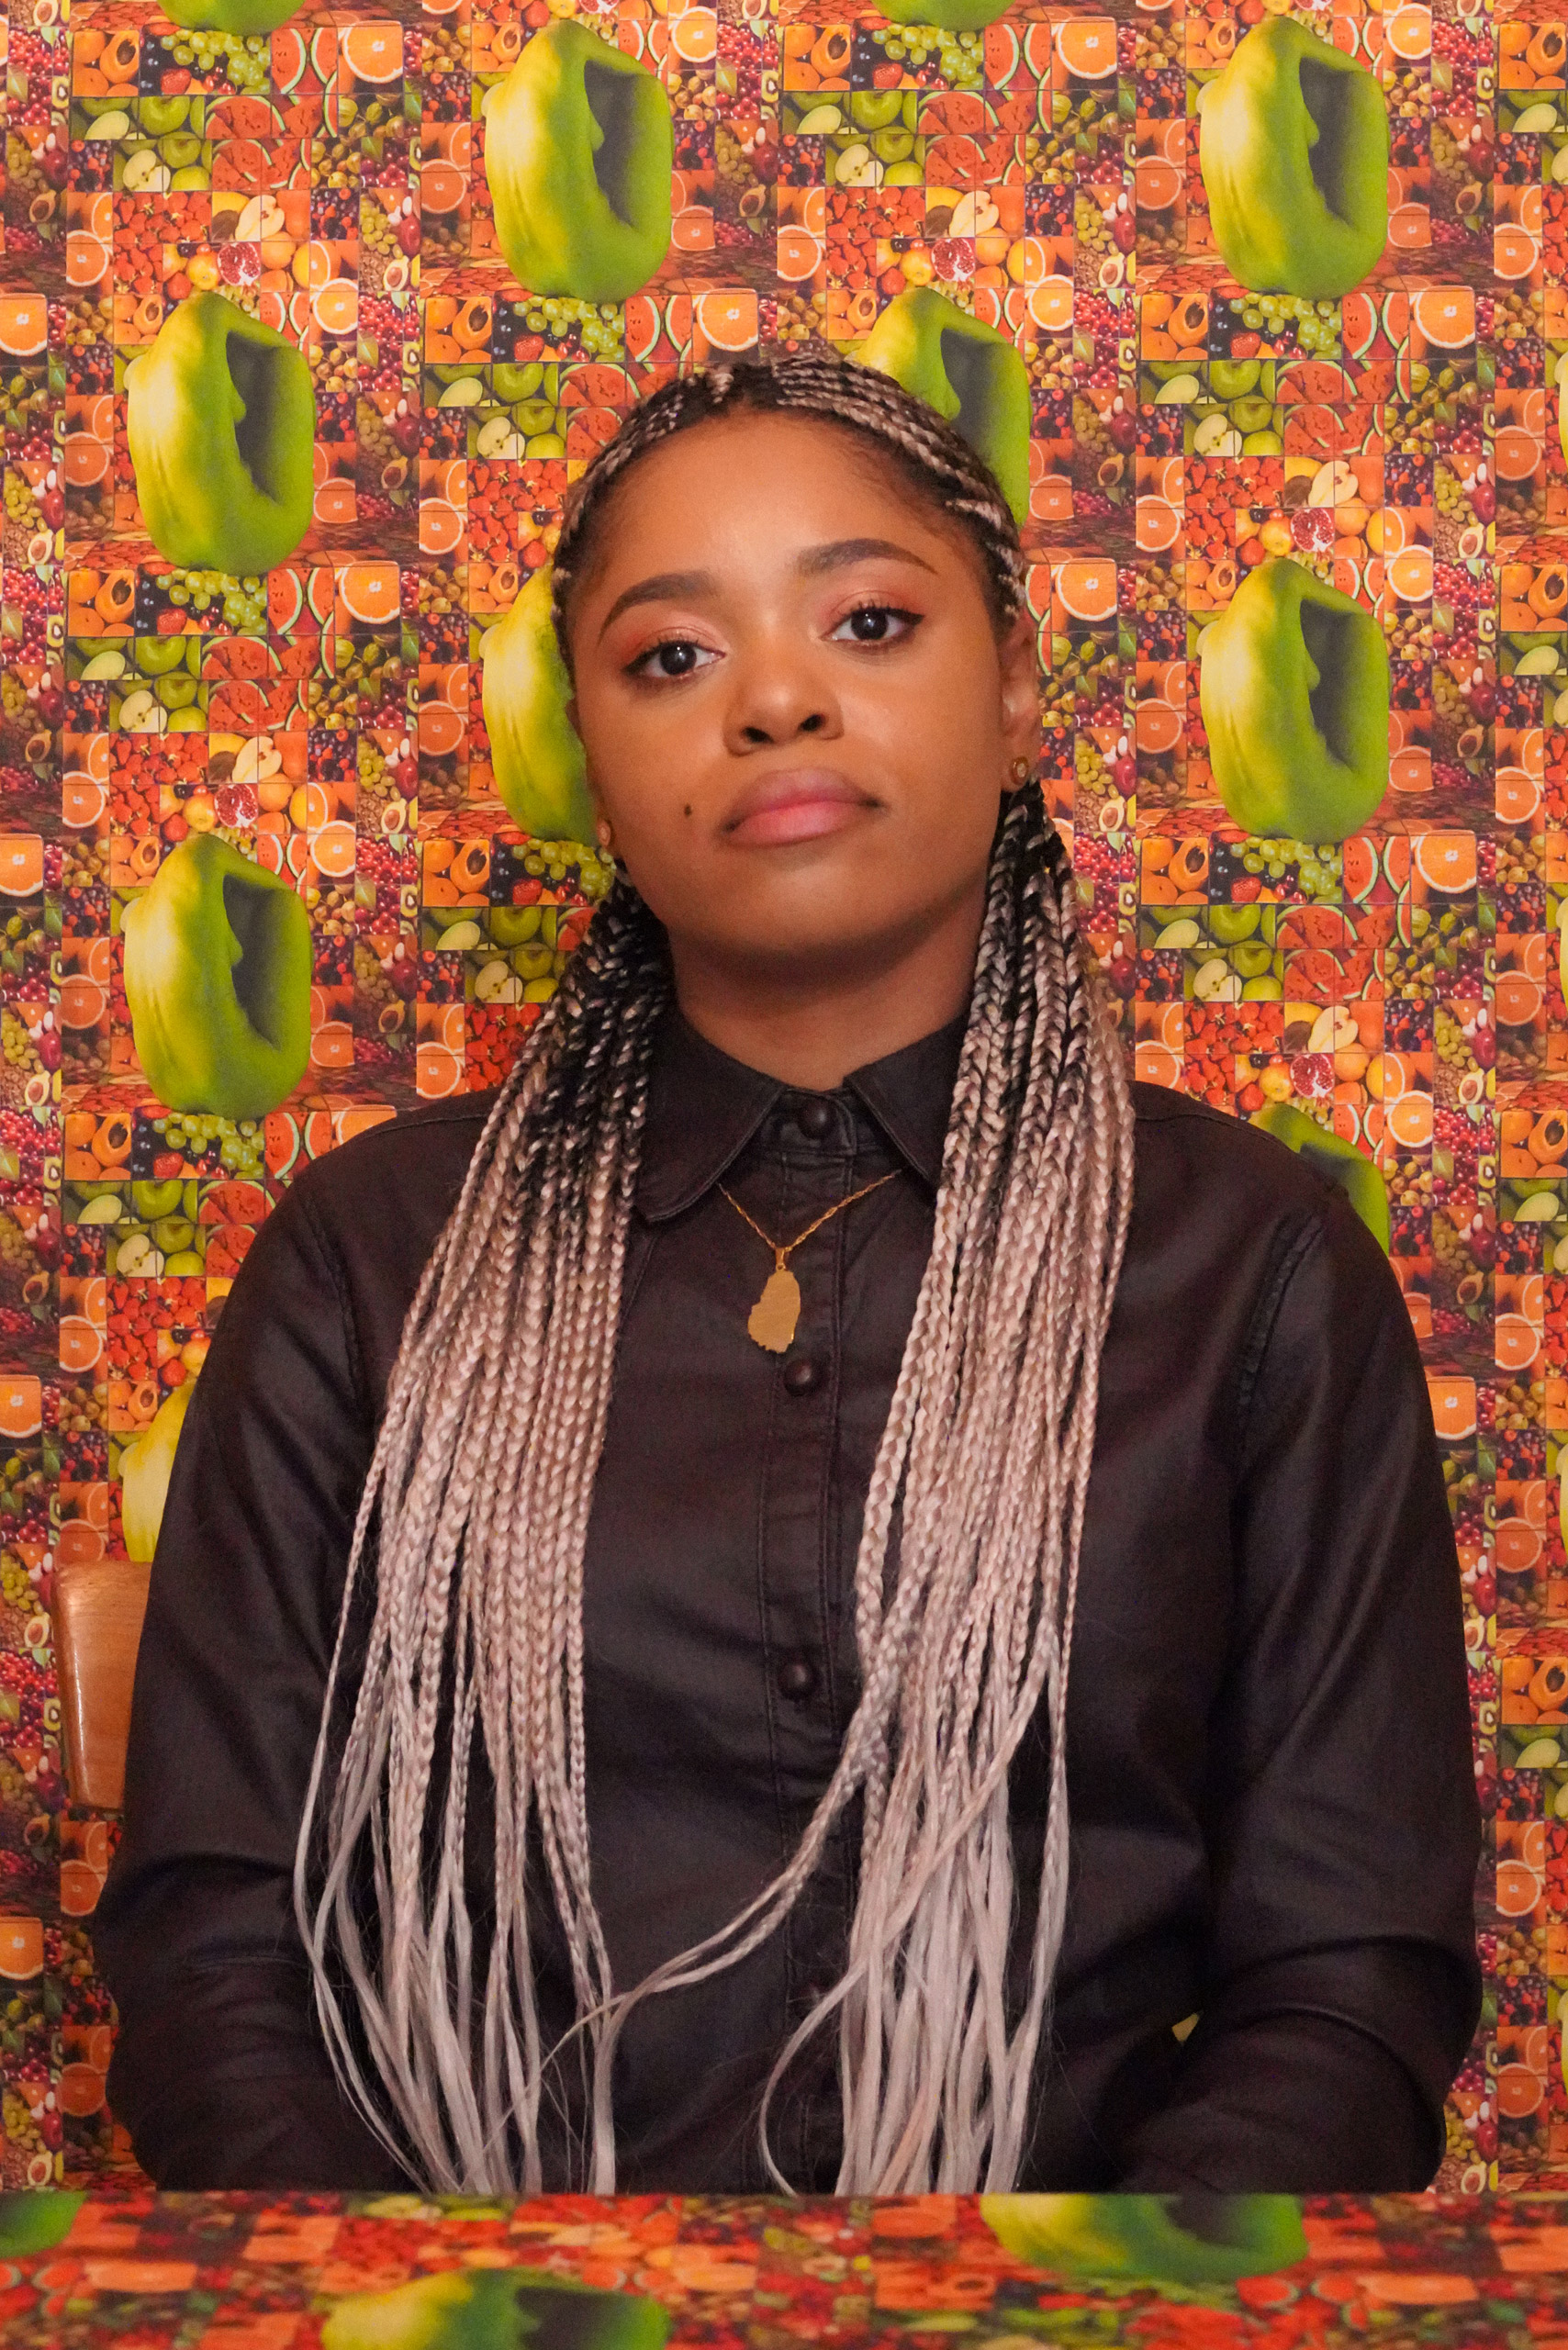 Lauren Marie Haywood looking at the camera while sitting in a room with brightly coloured fruit wallpaper